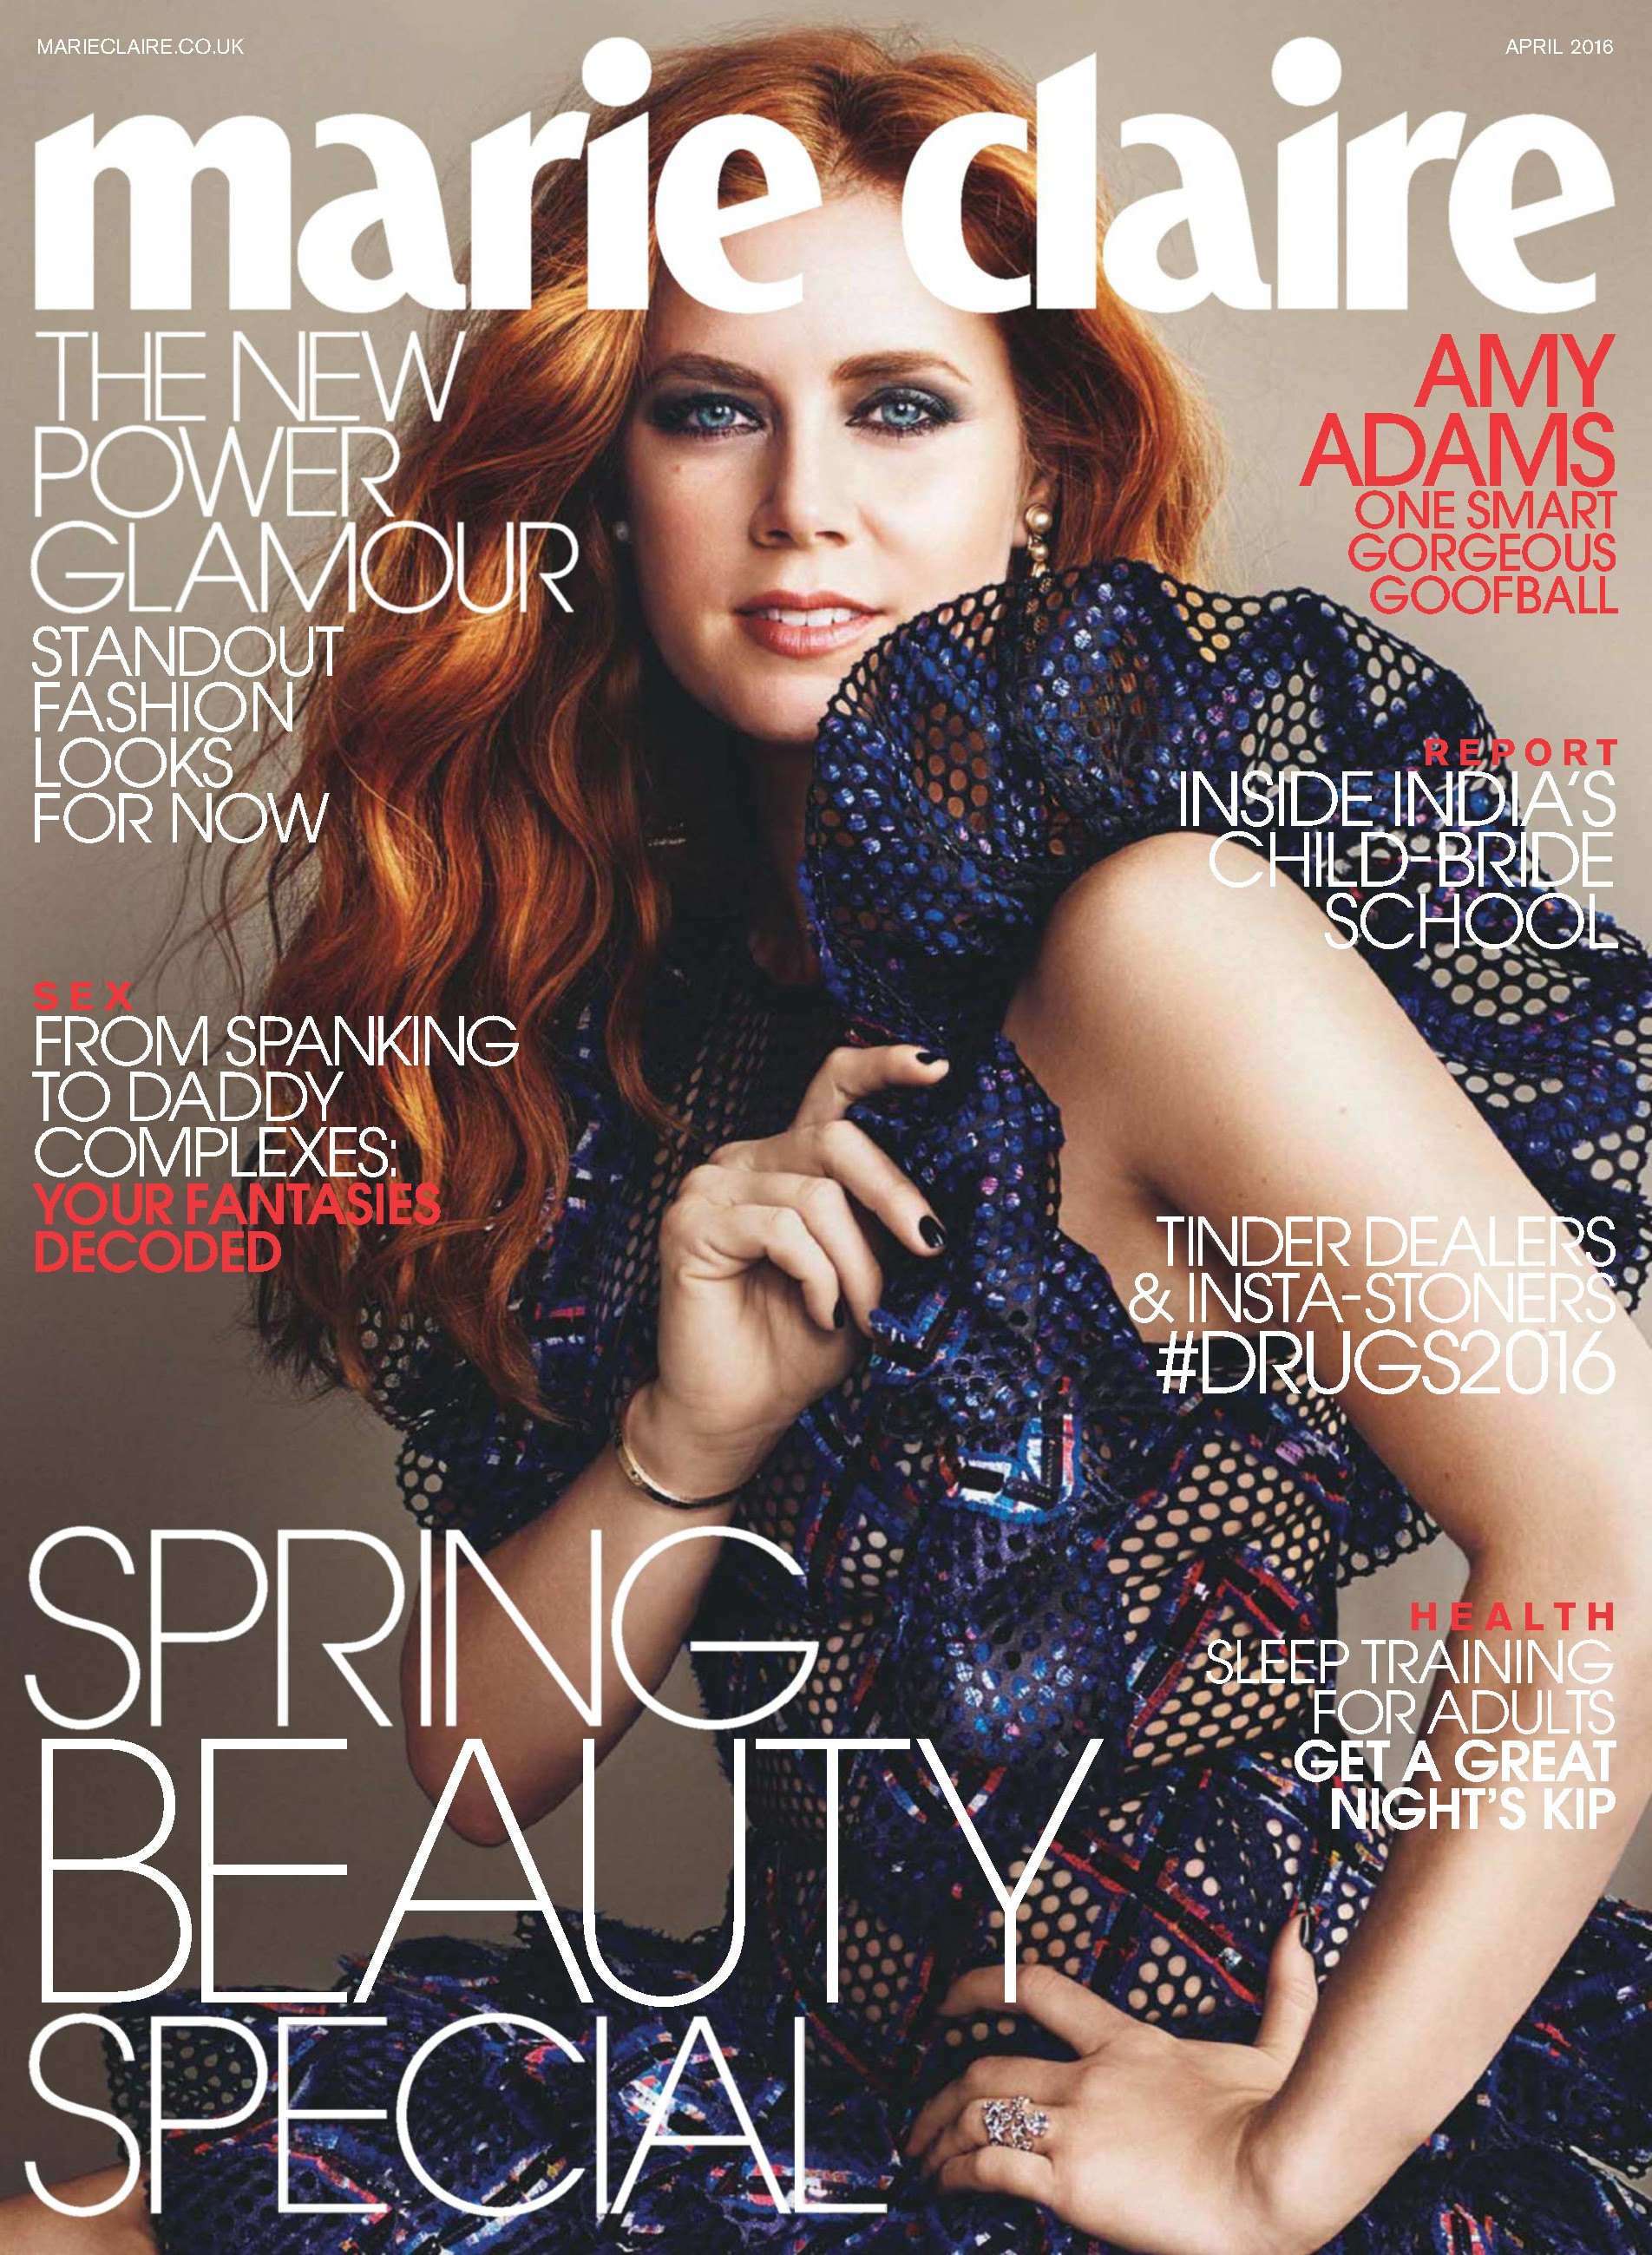 Amy Adams fotos desnuda